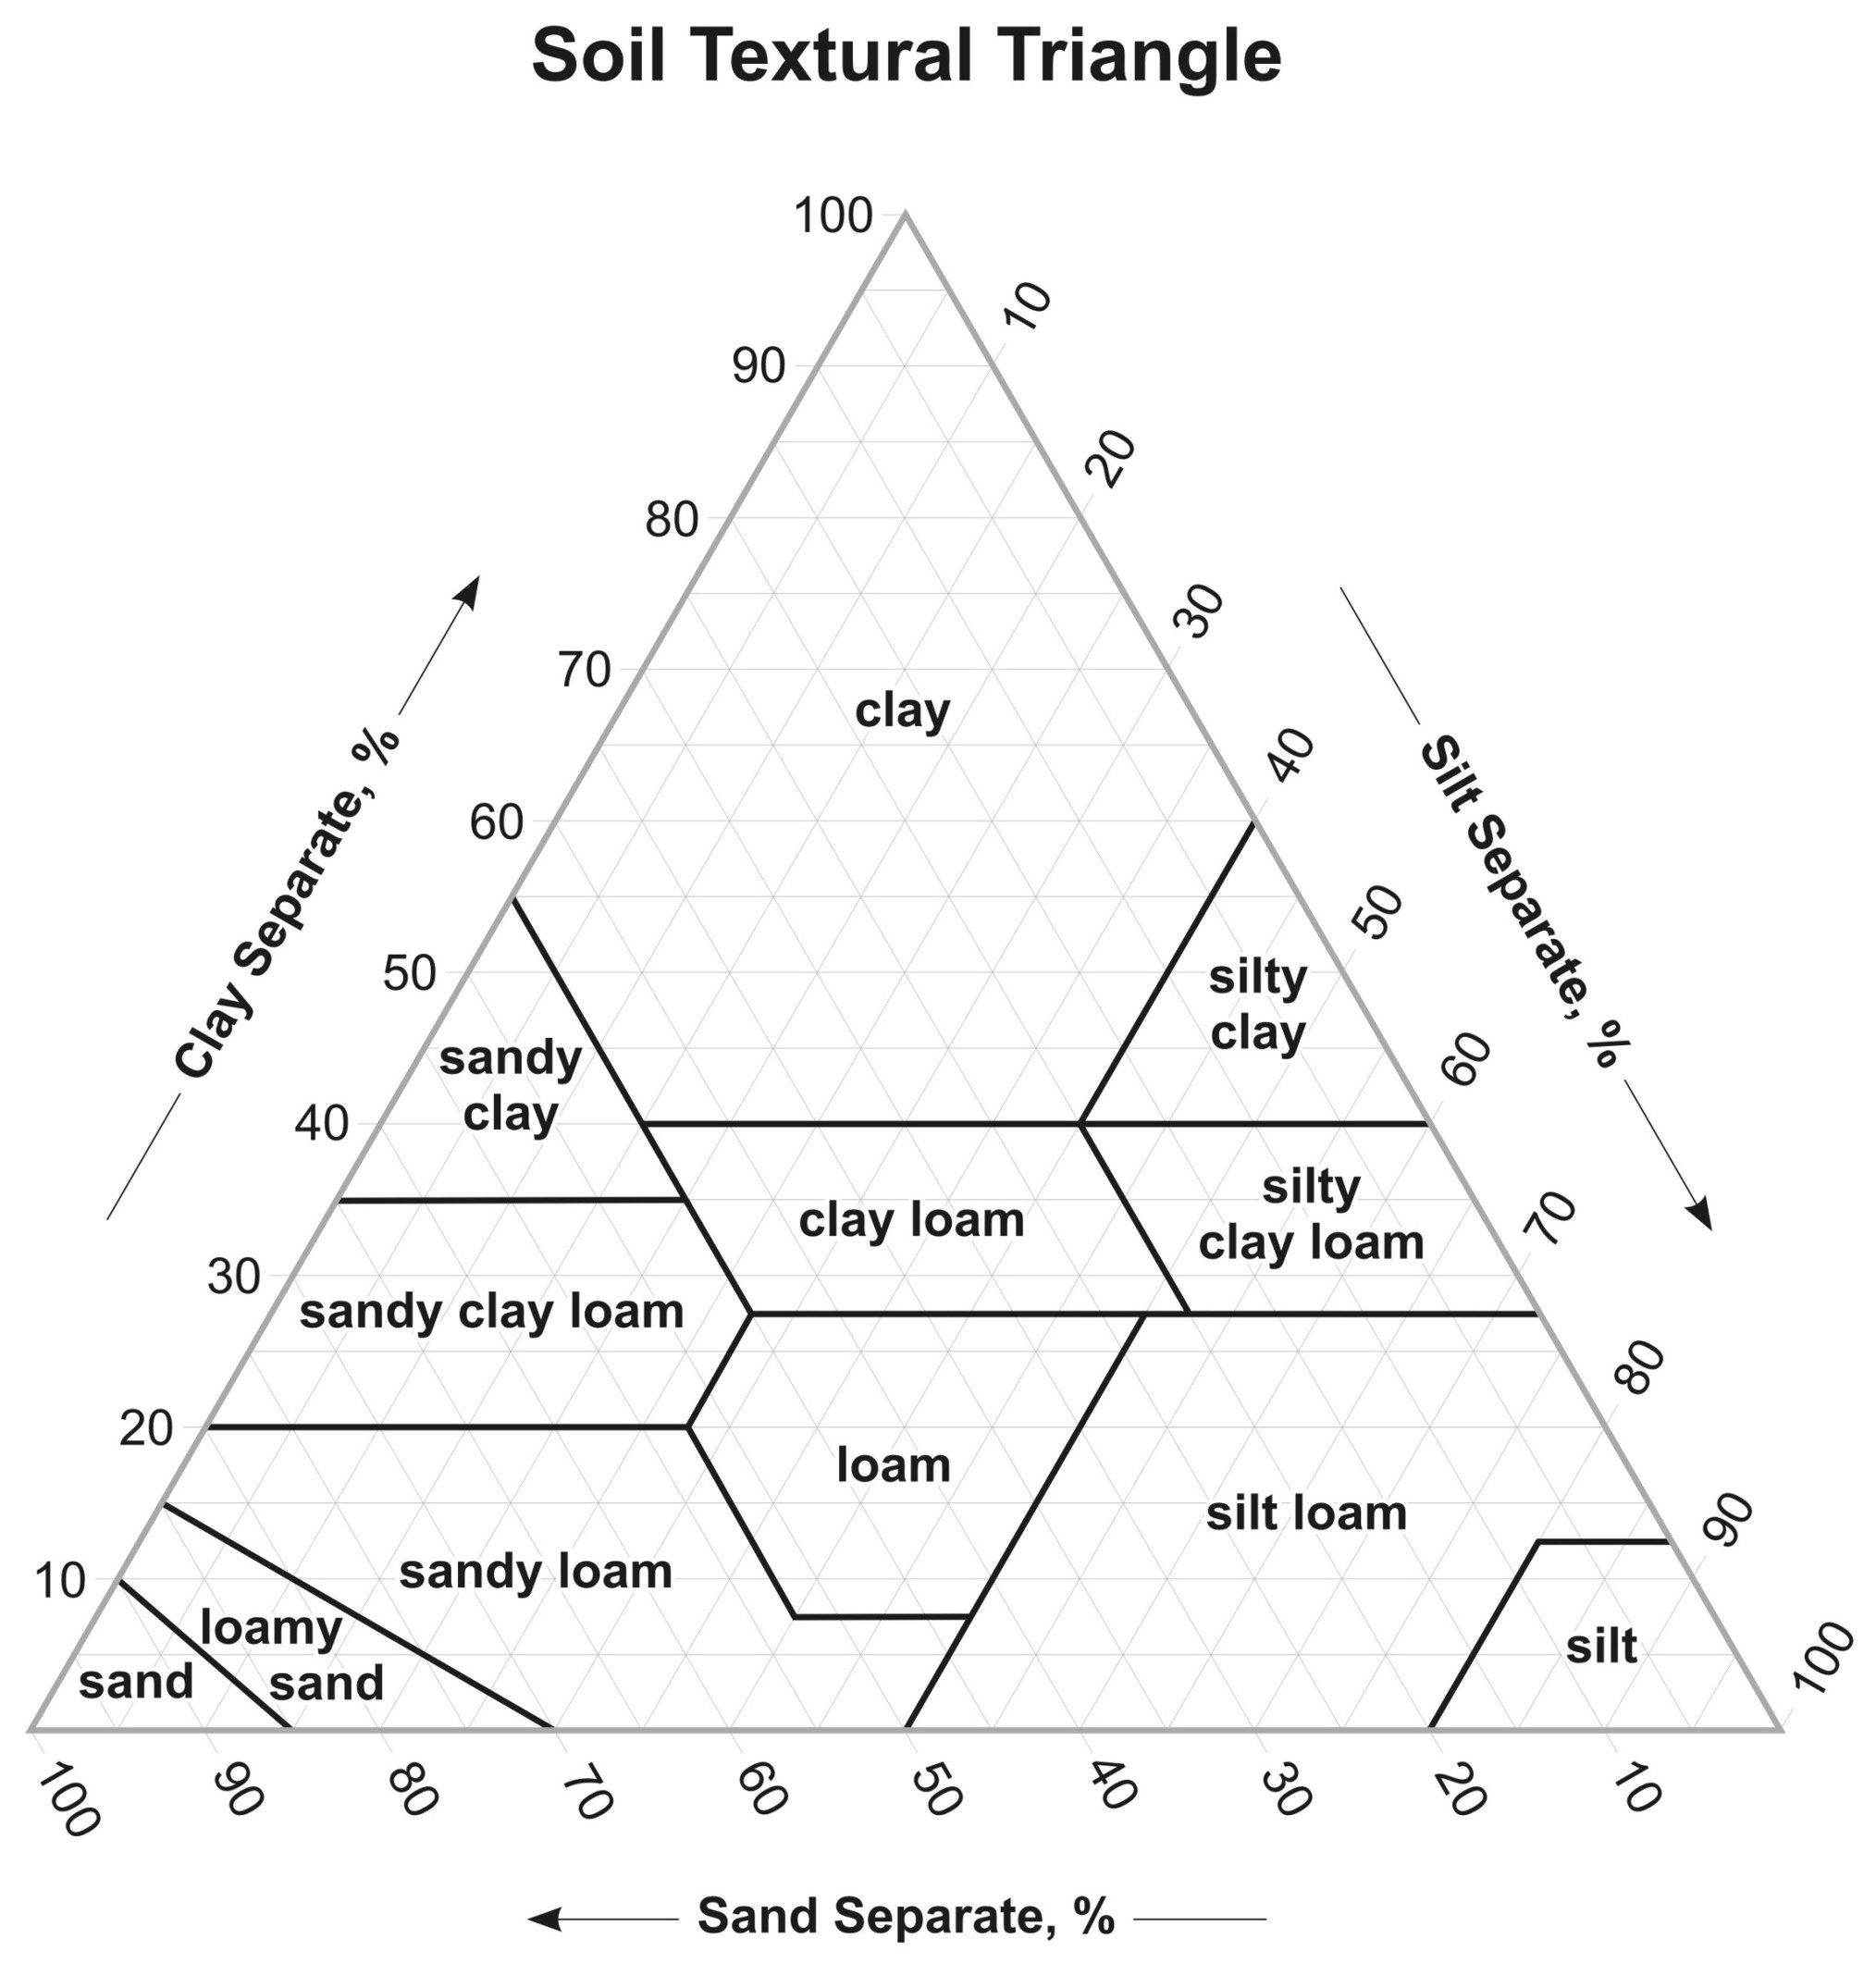 Collection of Soil Texture Triangle Worksheet Sharebrowse – Soil Texture Triangle Worksheet